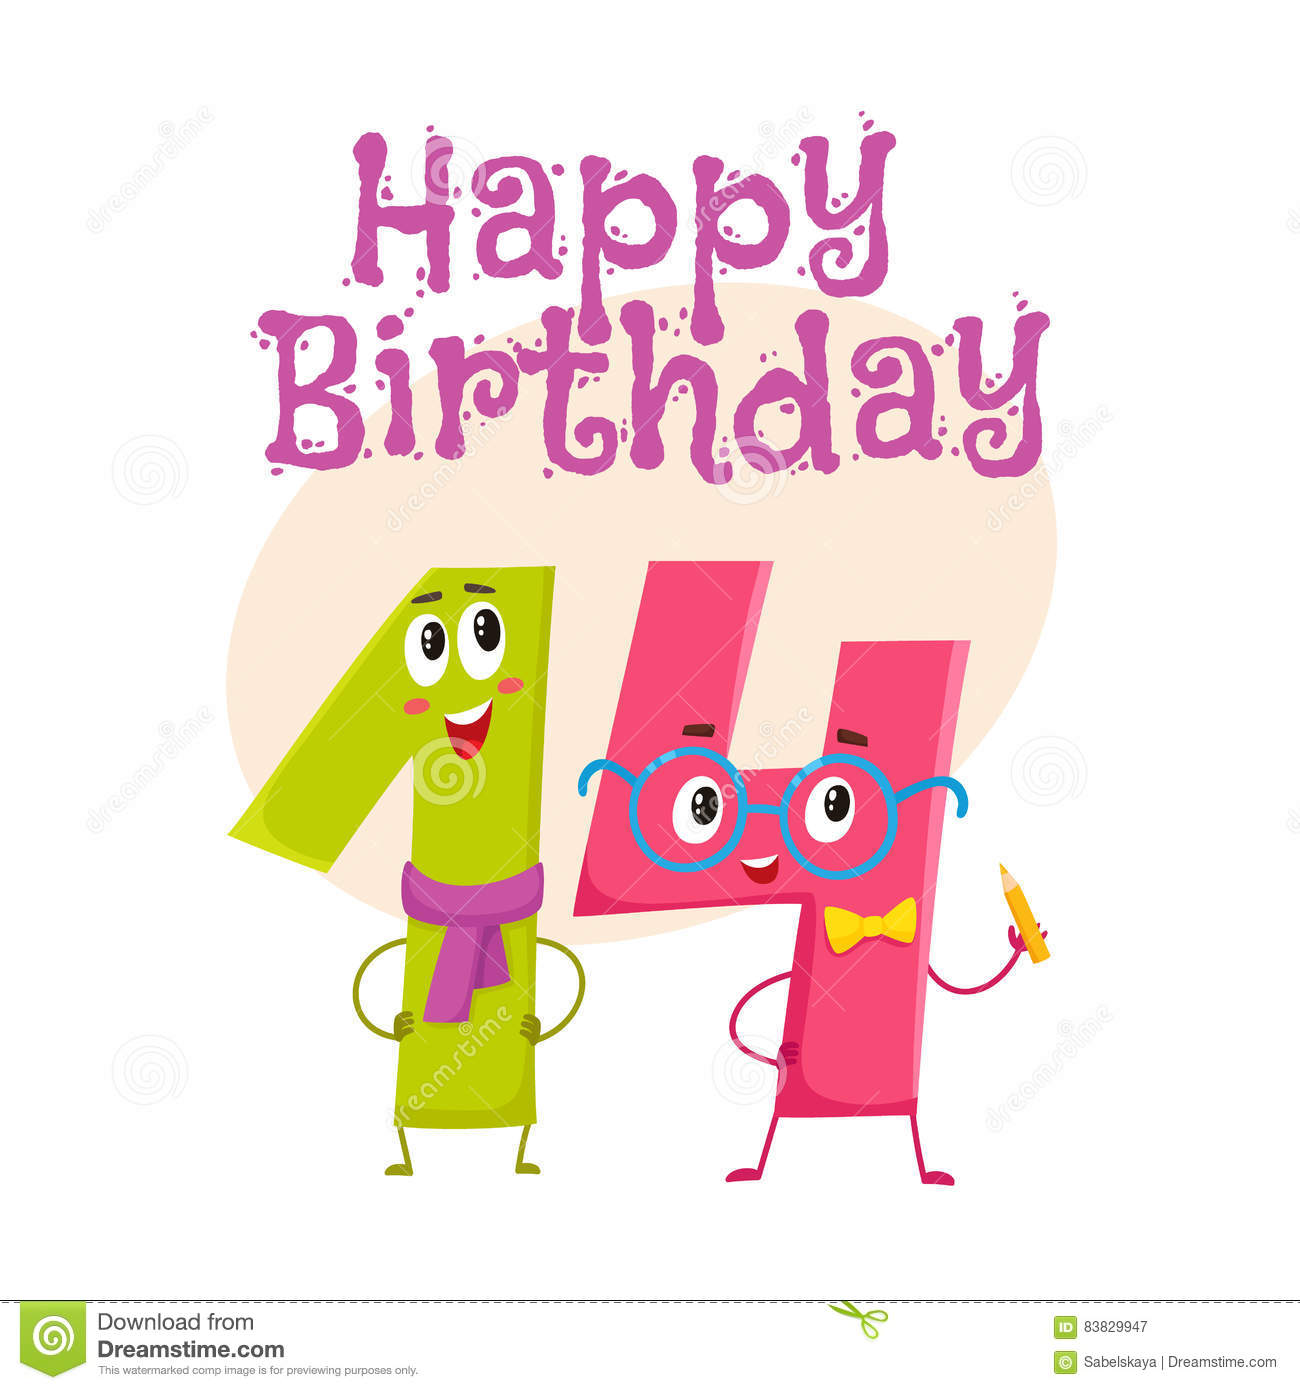 Happy birthday vector greeting card design with fourteen number characters